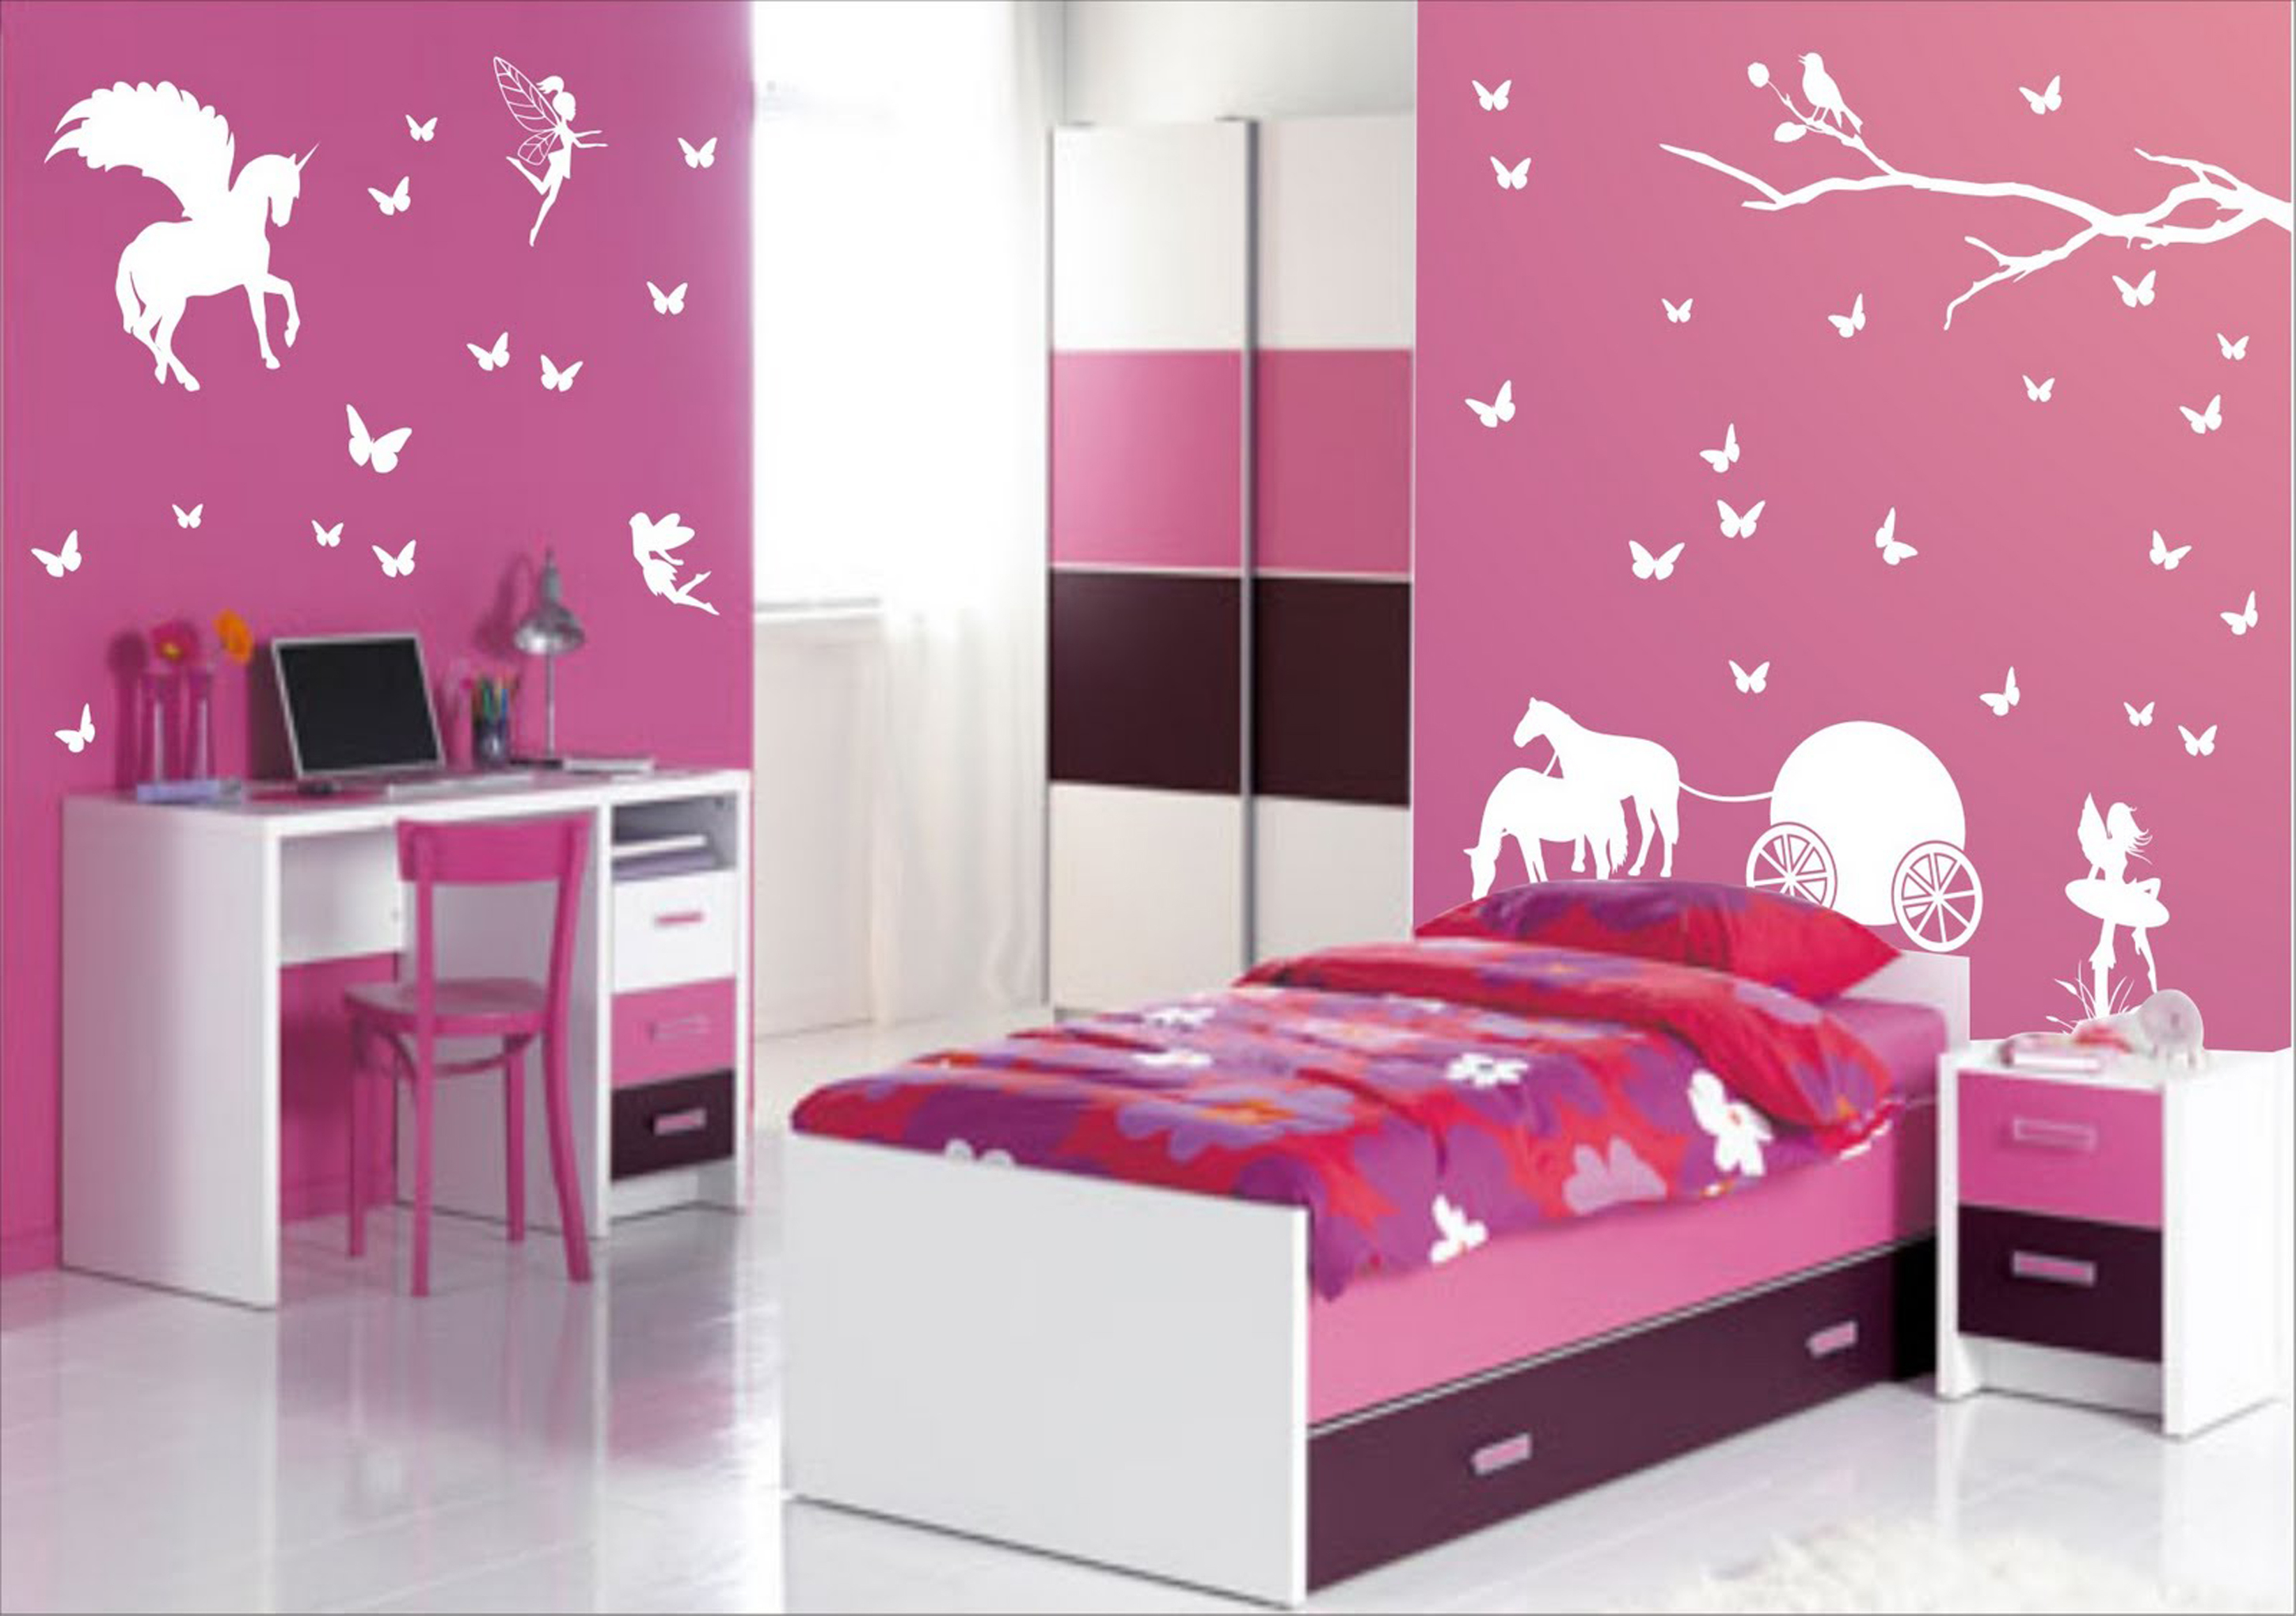 Minimalist Girls Design Red Bed Cover With Purple Floral Motive And White Study Table With Pink Chair Together With Pink Wall With White Butterfly Motive Cool Design Bedroom Ideas (Image 17 of 25)